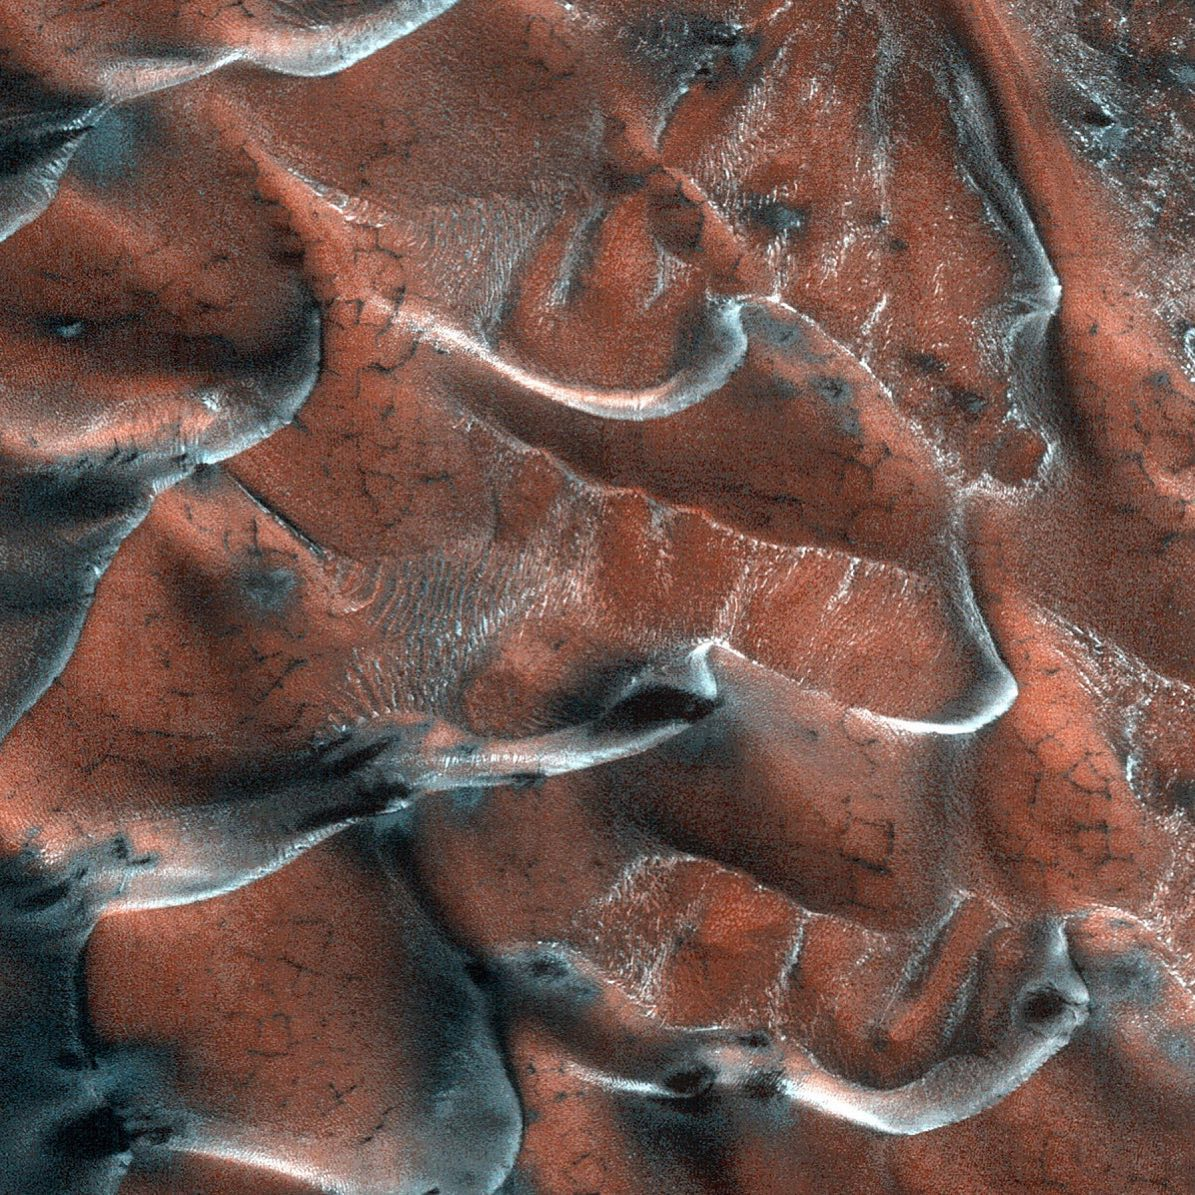 the red planet. a field of sand dunes occupies this frosty 5-kilometer diameter crater in the high-latitudes of the northern plains of mars. some dunes have separated from the main field and appear to be climbing up the crater slope along a gully-like form.Image Credit: NASA/JPL-Caltech/University of Arizona#theredplanet #mars #sanddunes #lifeonmars